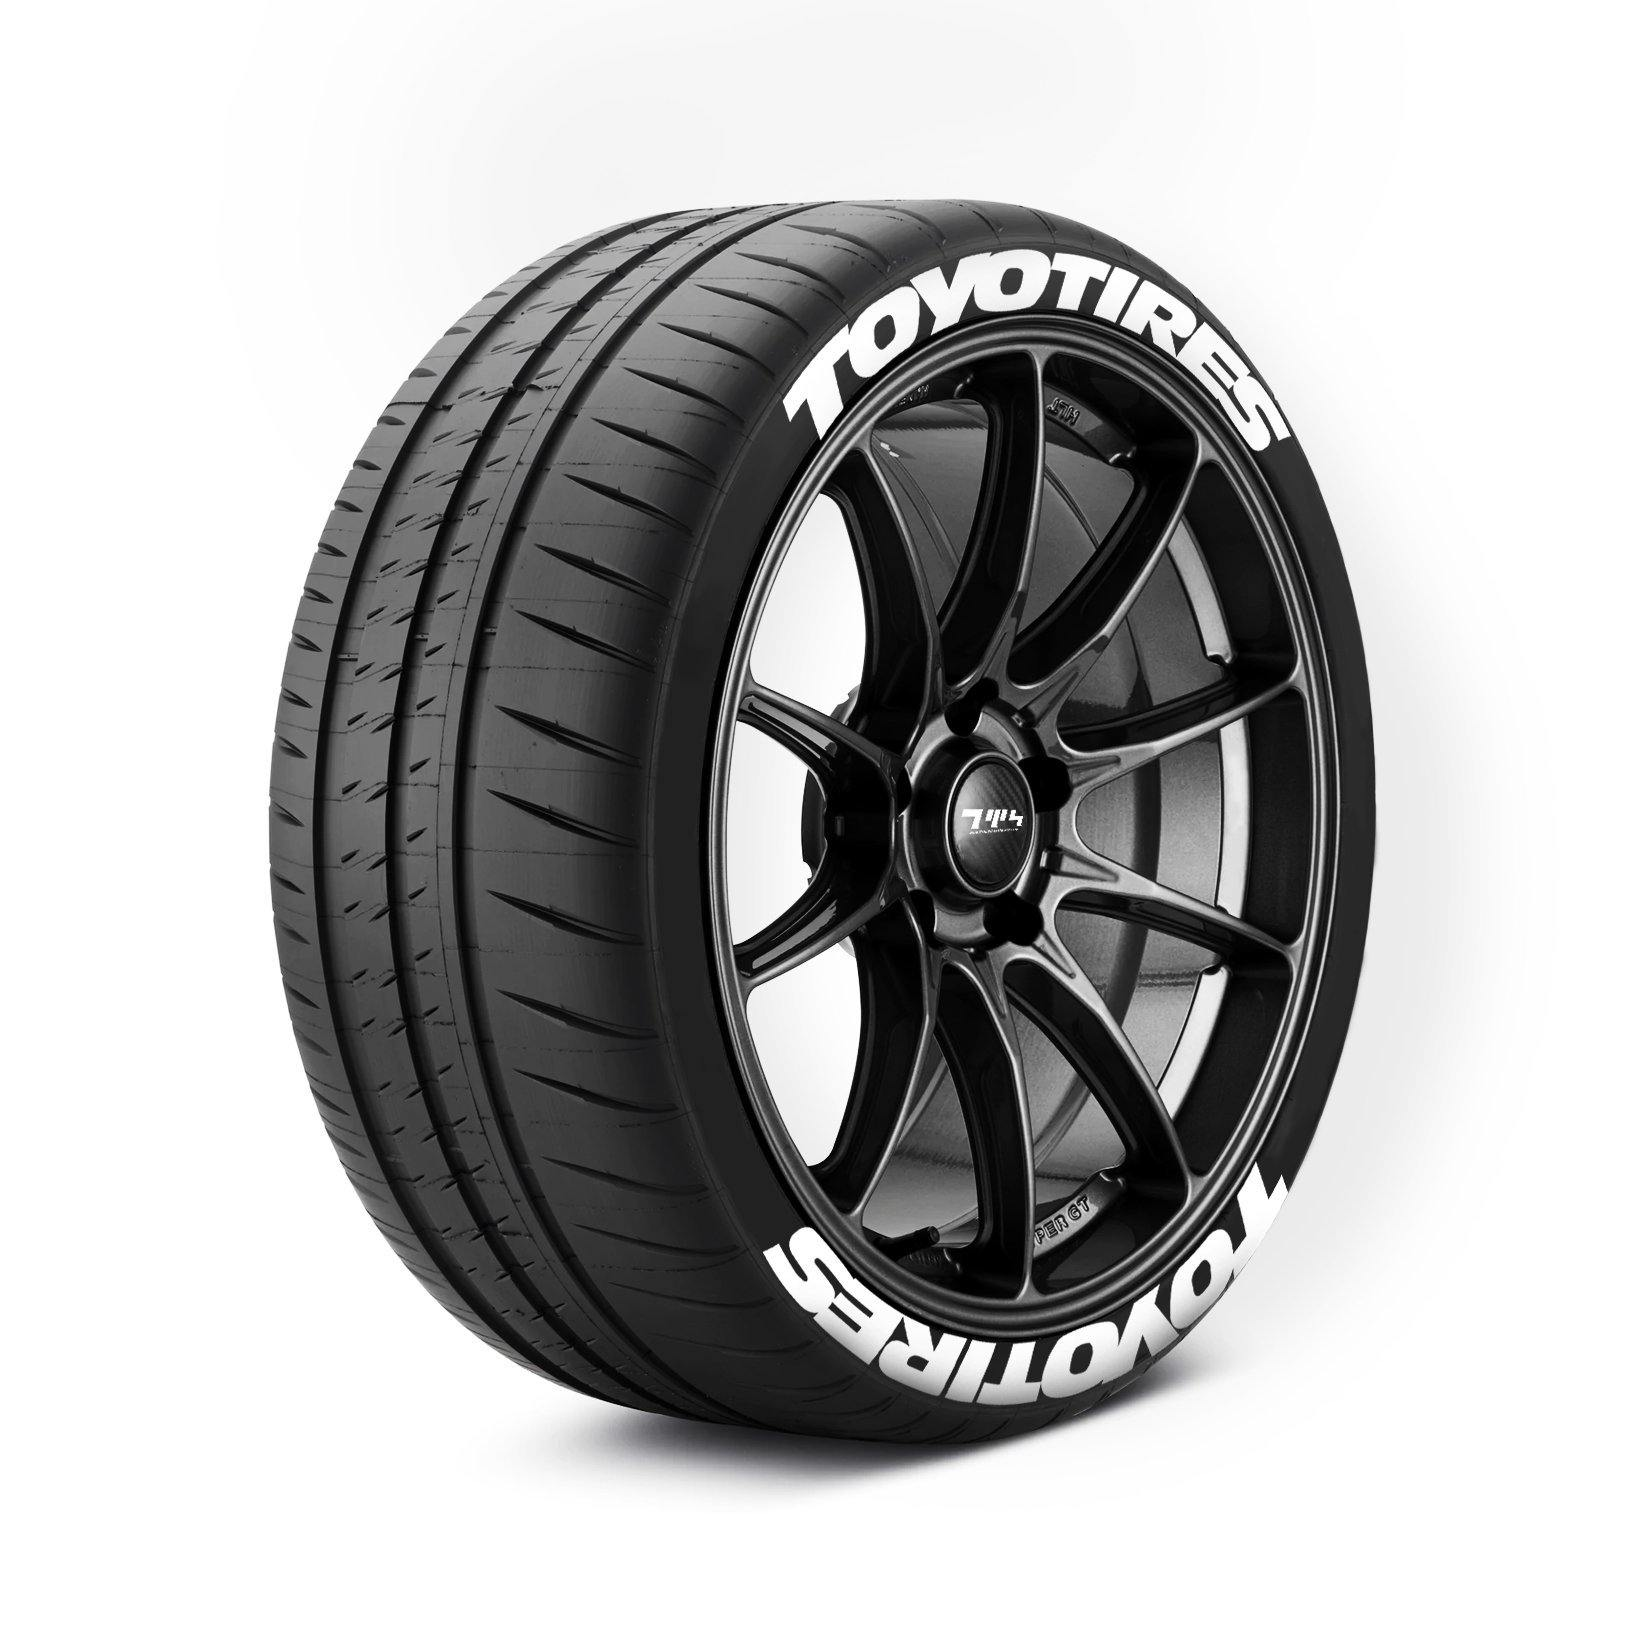 TOYO TIRES Tyre Stickers - Tyre Wall Stickers